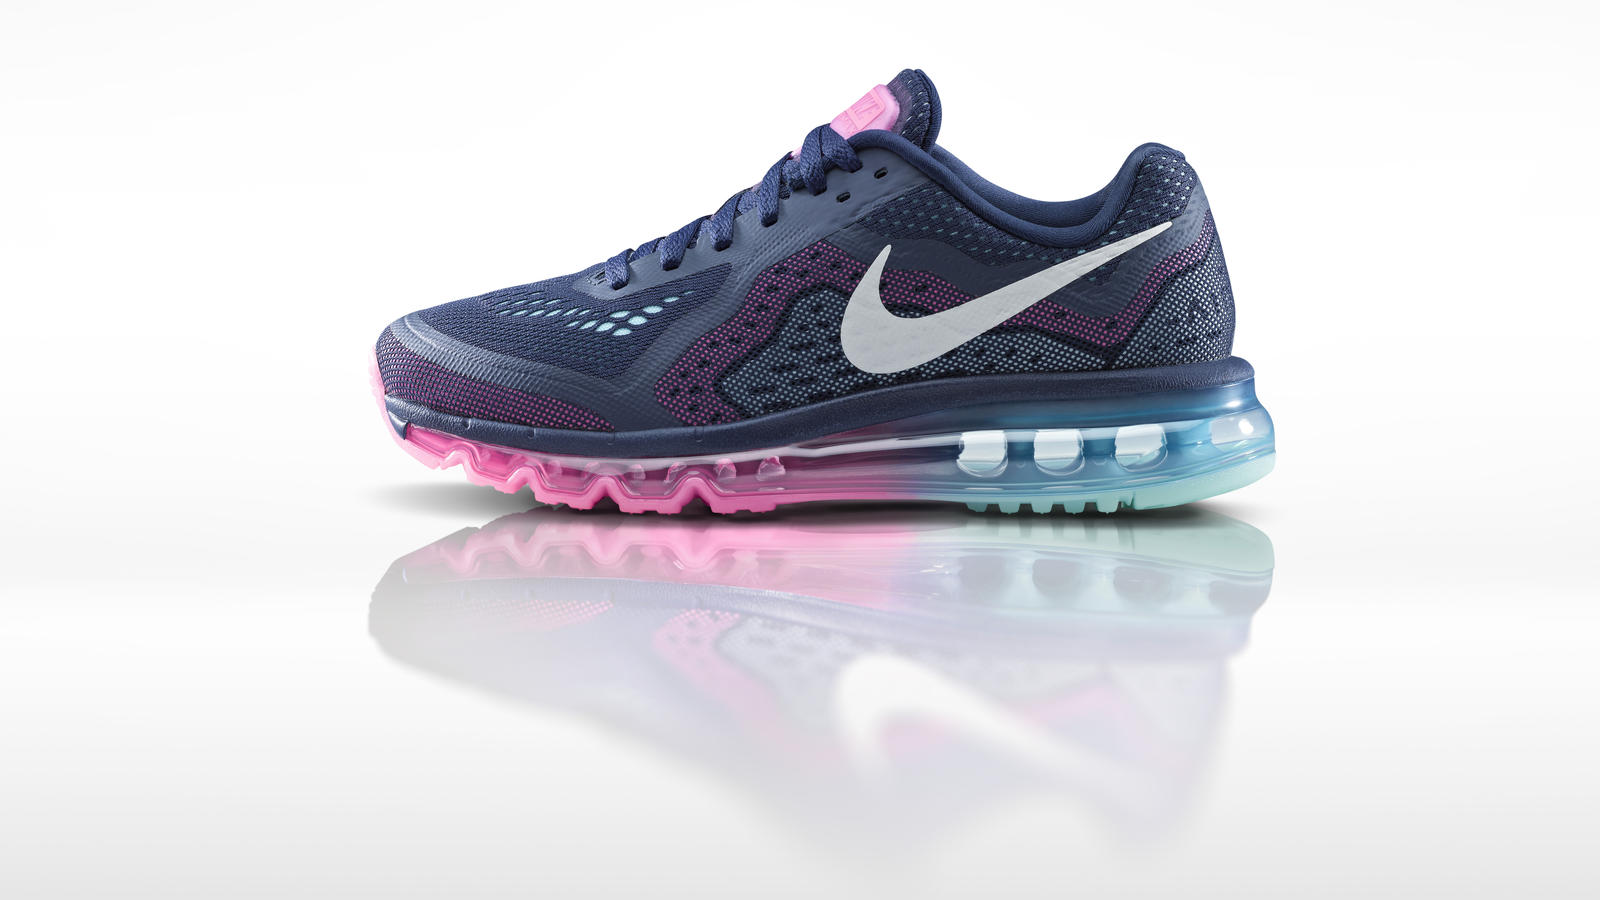 sports shoes 24c0d 2da09 nike air max 2014 womens profile. nike air max 2014 mens detail2.  nike air max 2014 womens detail3. nike flyknit air max mens profile